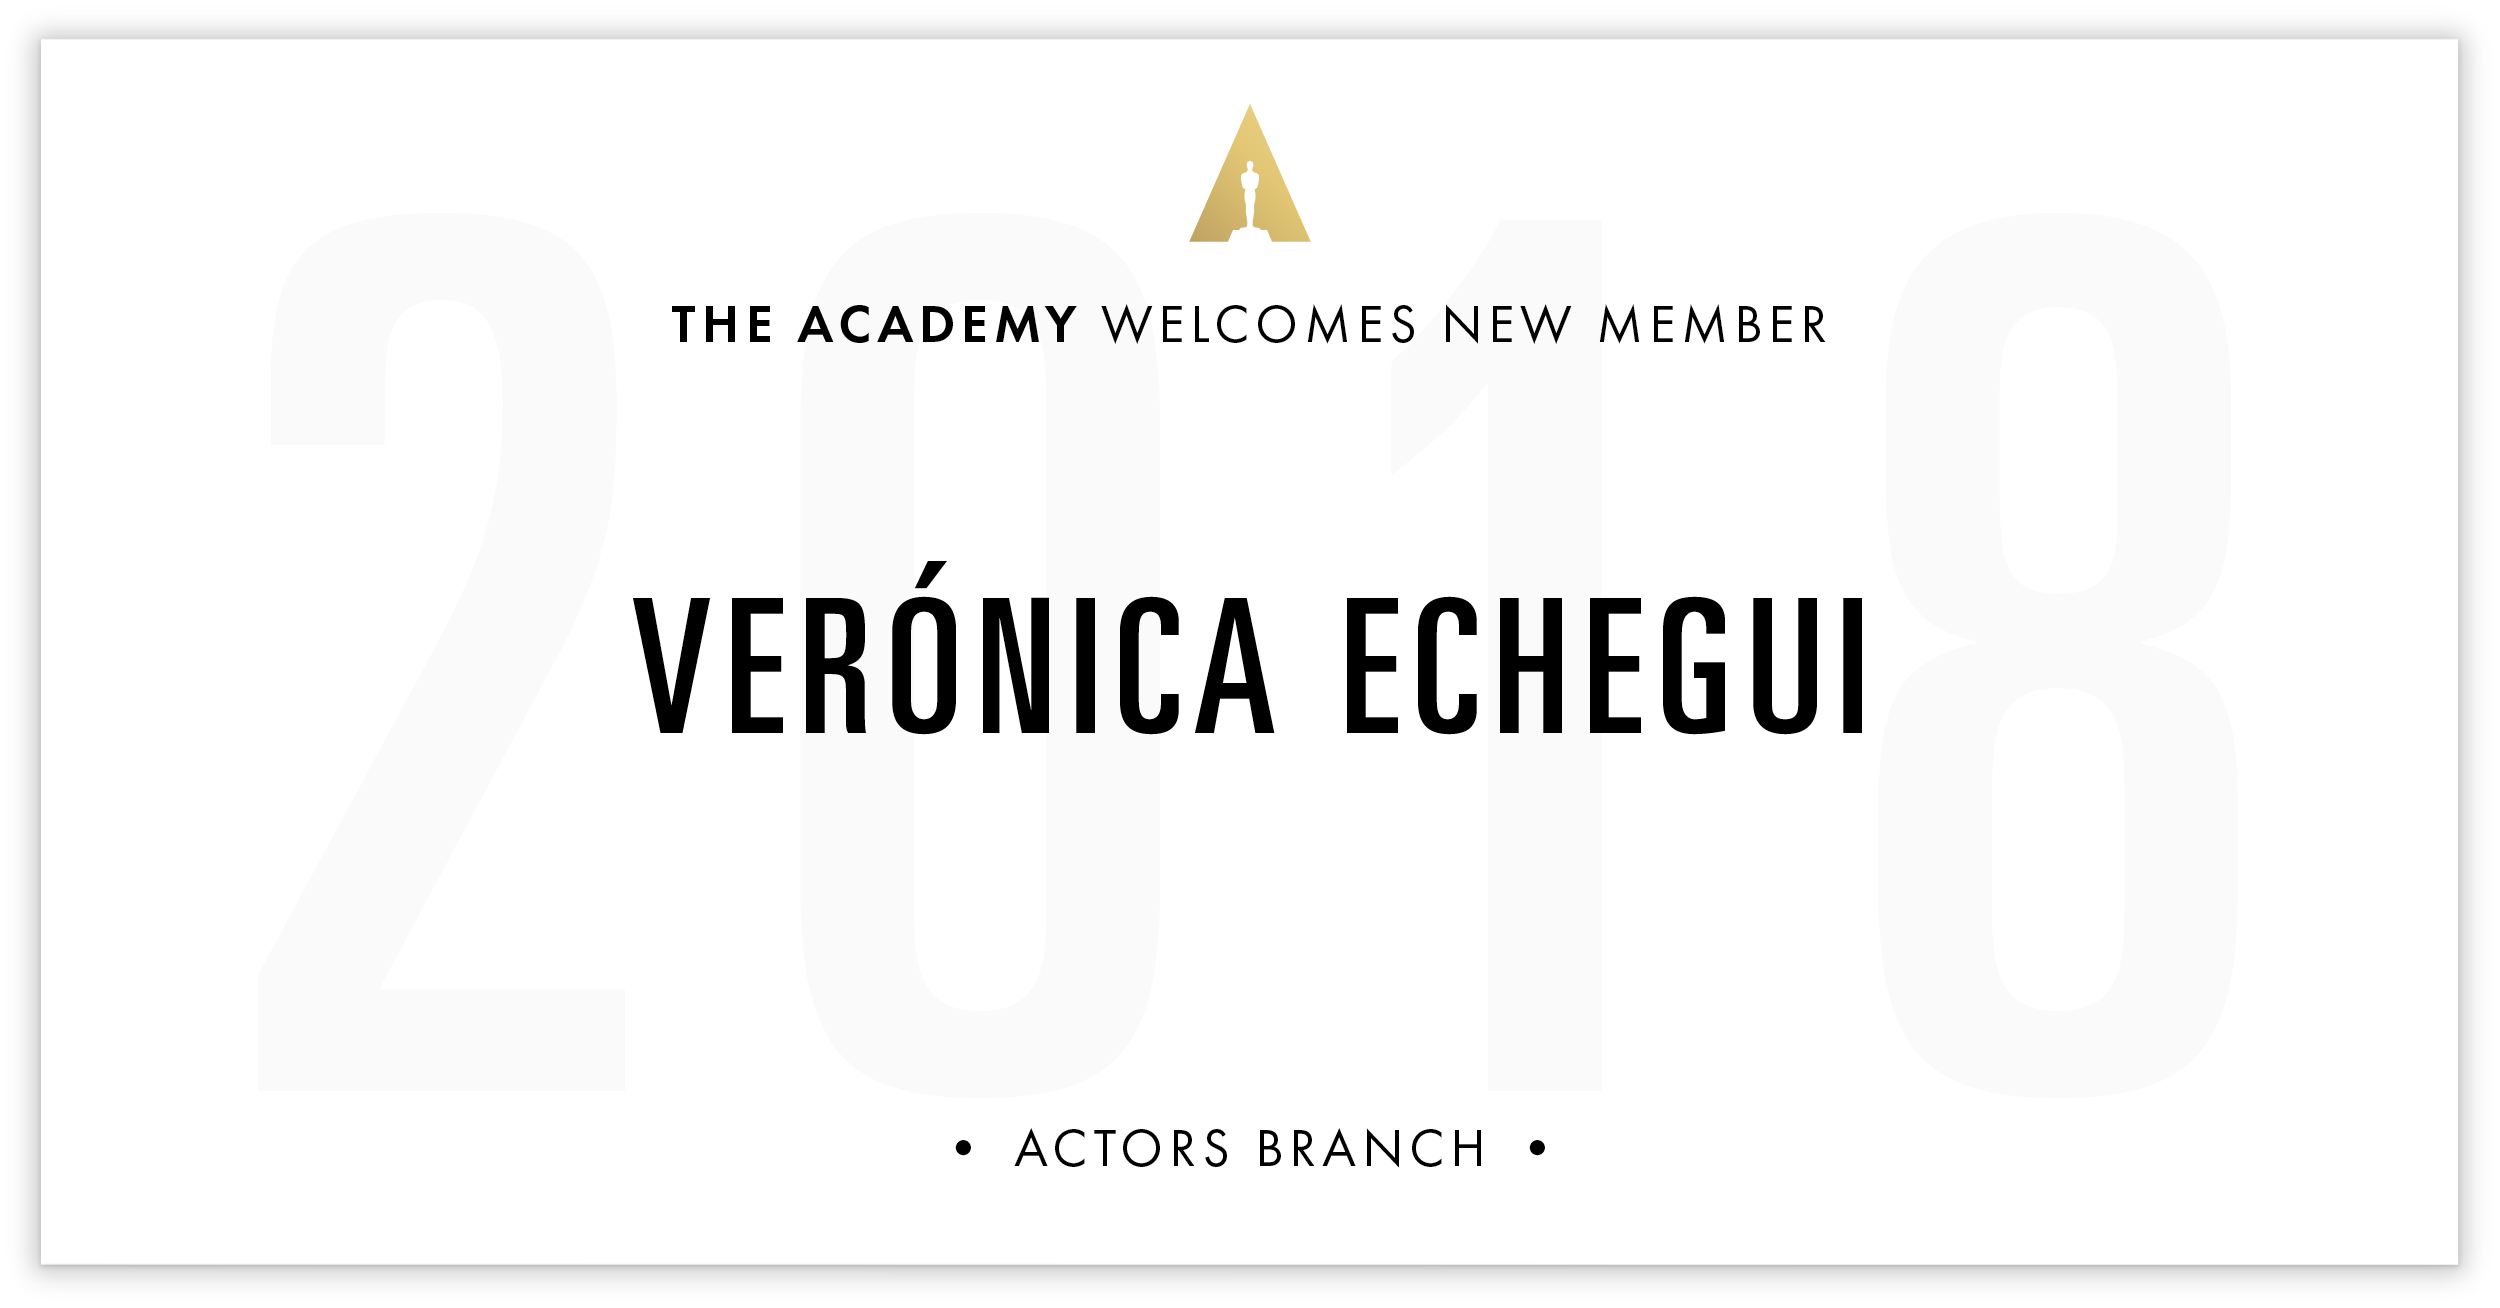 Verónica Echegui is invited!